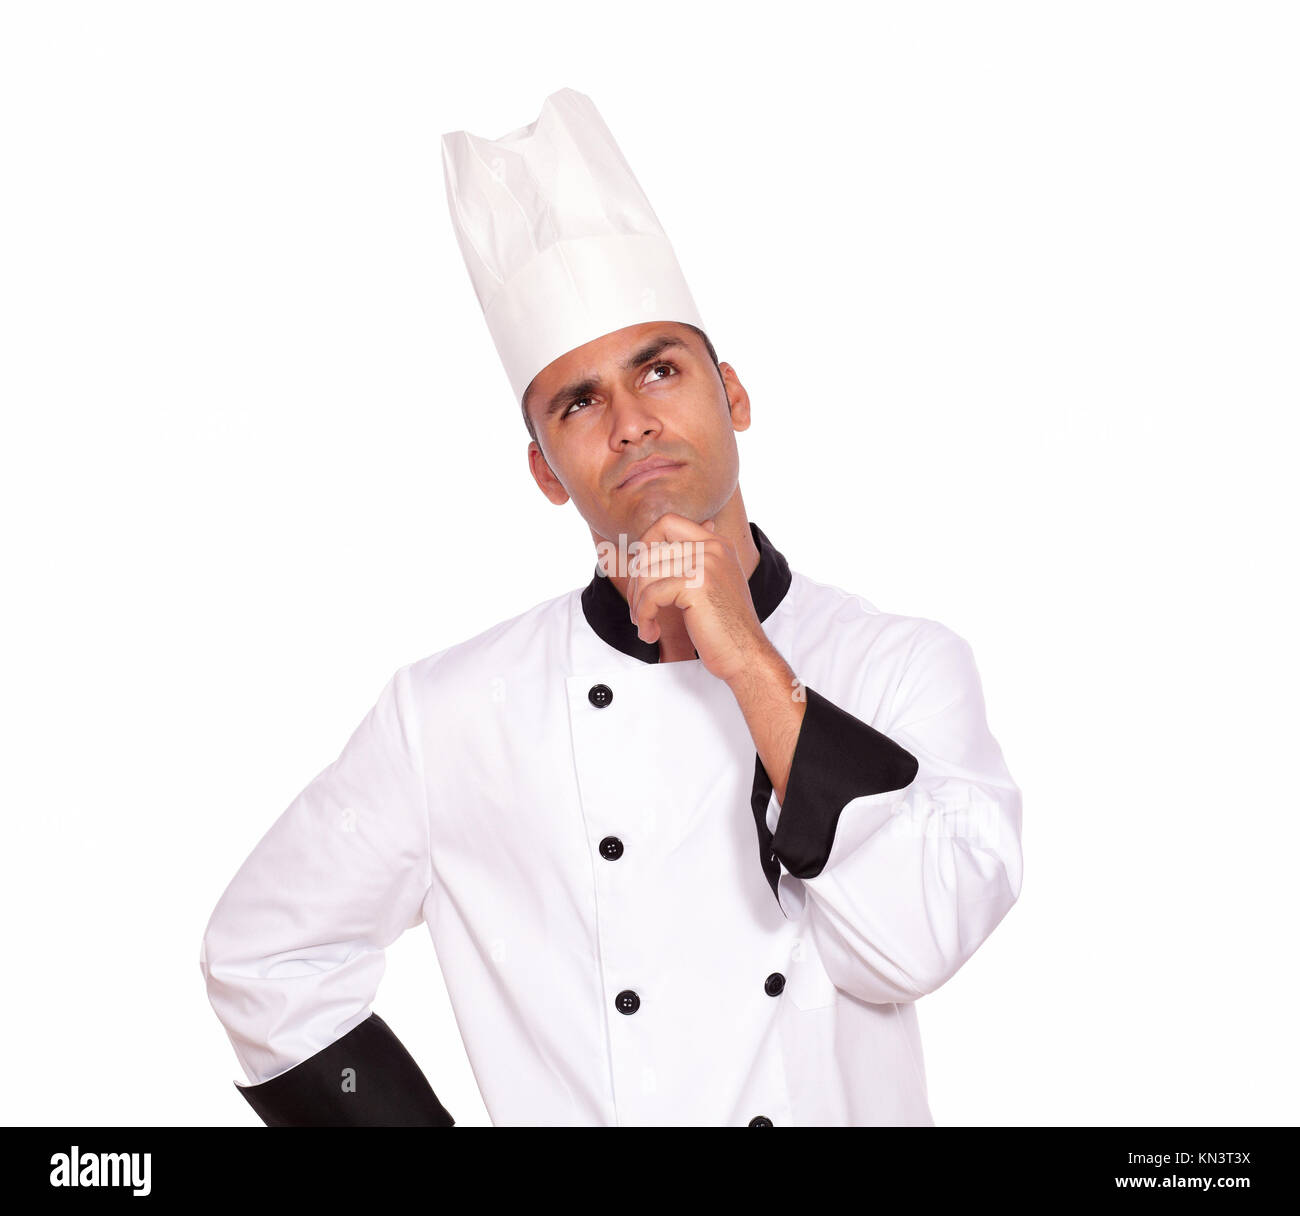 Portrait of a pensive professional chef looking to left up in uniform against white background - copyspace. - Stock Image